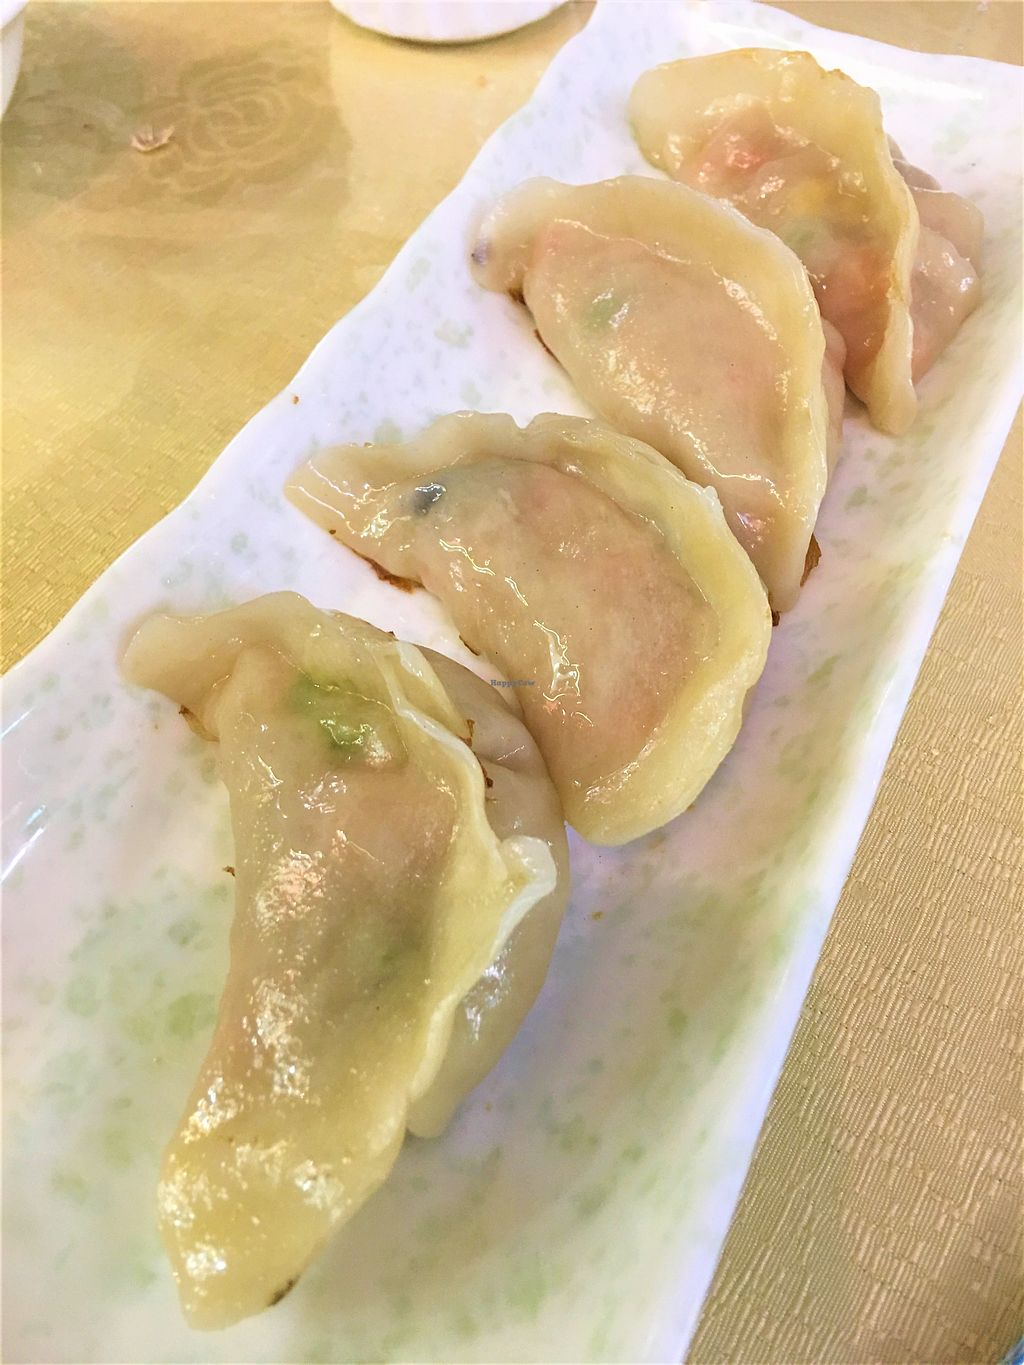 """Photo of A Mi Tuo Fo Su Xin Yuan  by <a href=""""/members/profile/Stevie"""">Stevie</a> <br/>Dumplings <br/> October 13, 2017  - <a href='/contact/abuse/image/102842/314744'>Report</a>"""